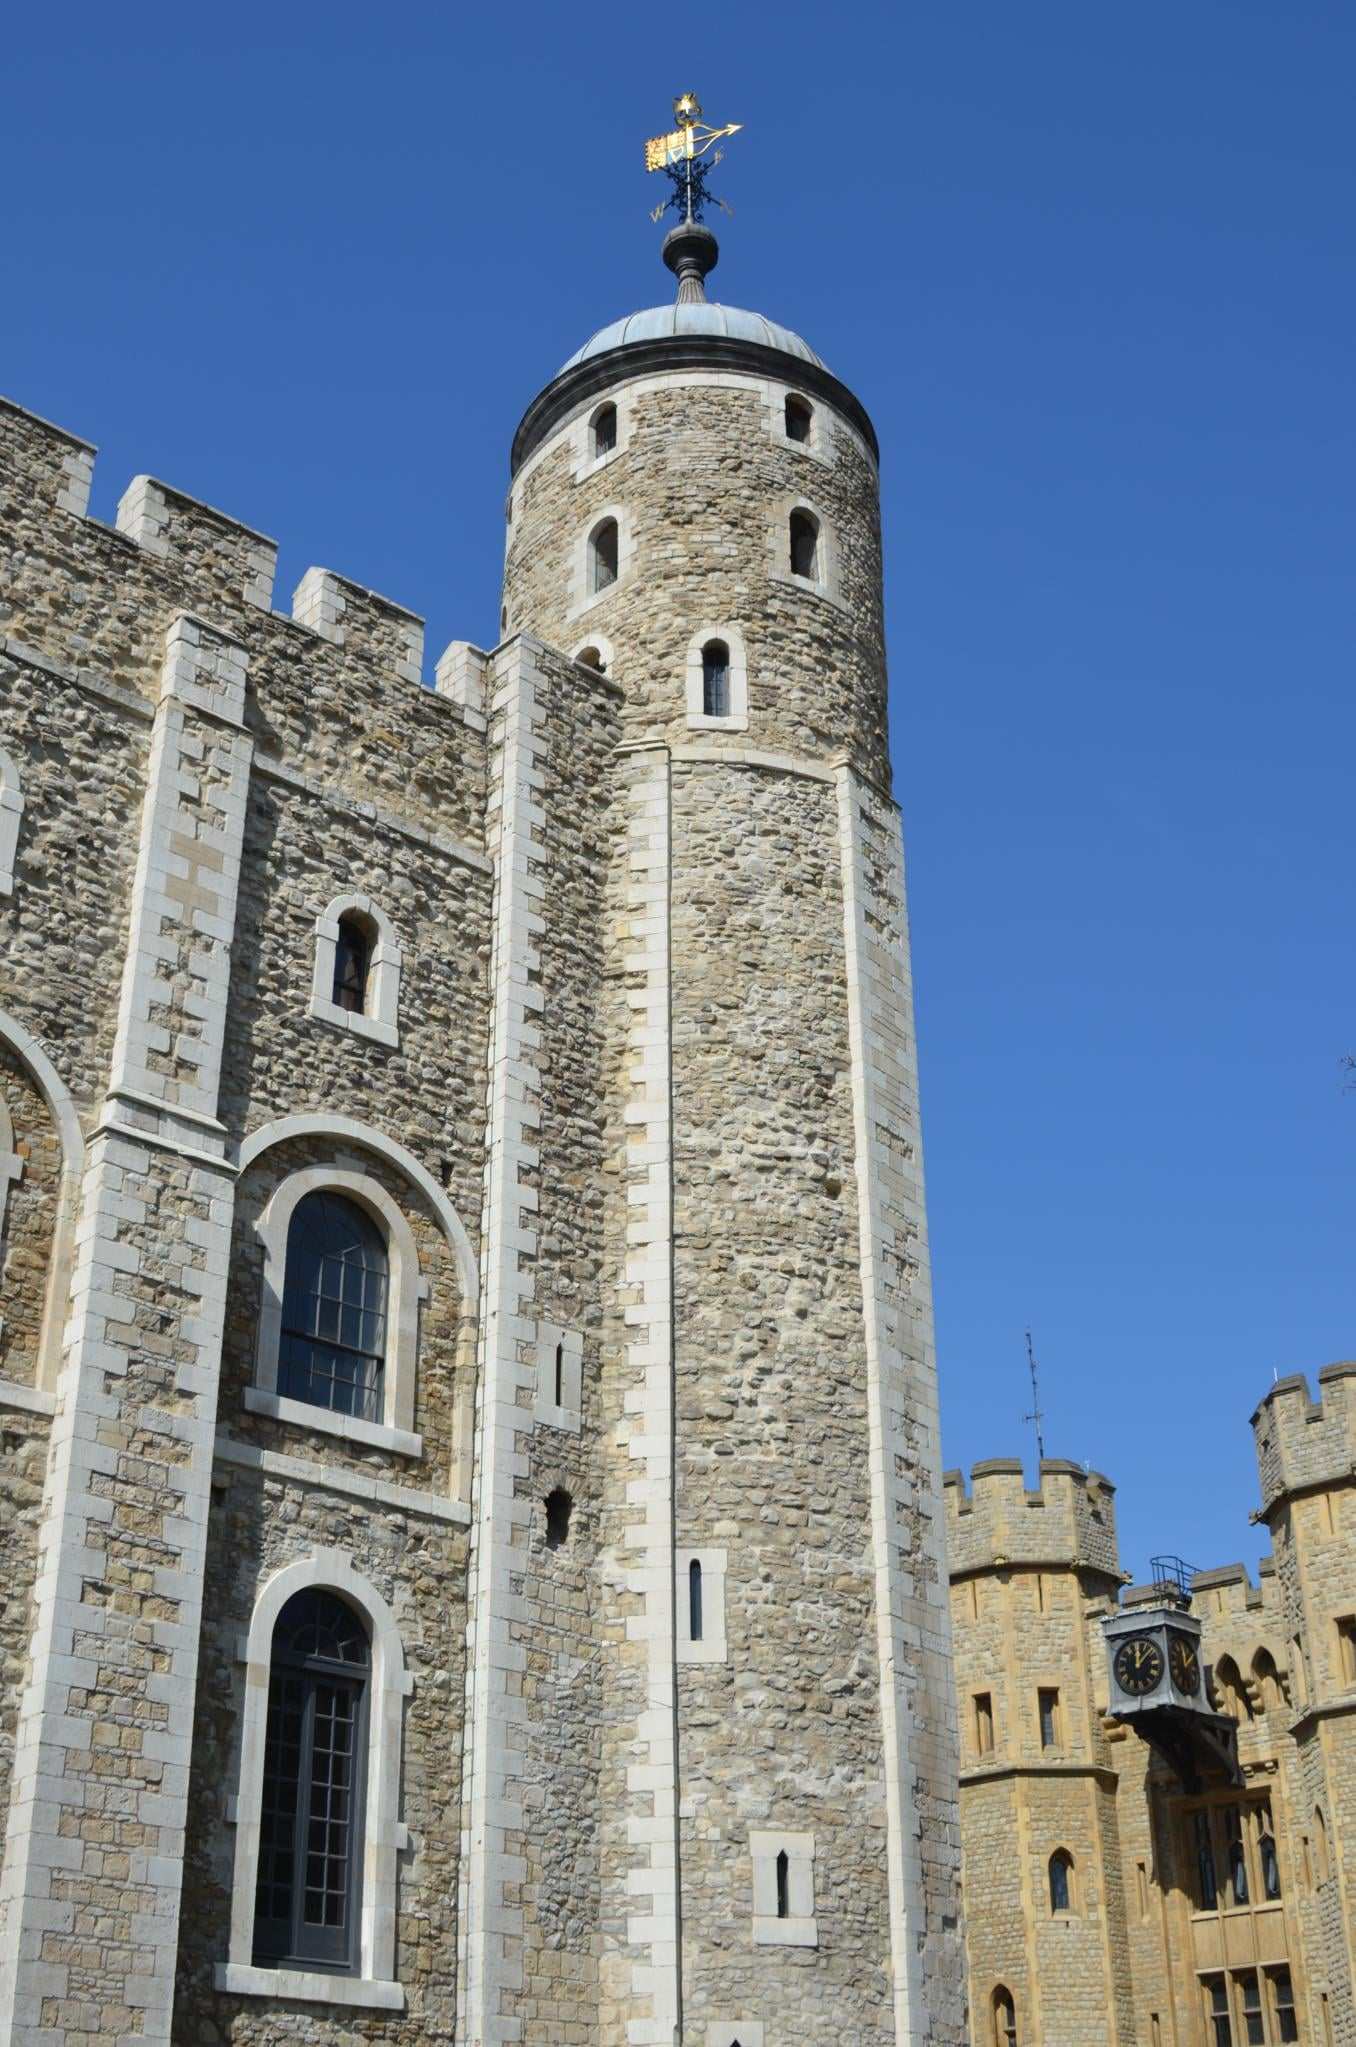 Tower of London   (CC BY 2.0)  by  Xiquinho Silva